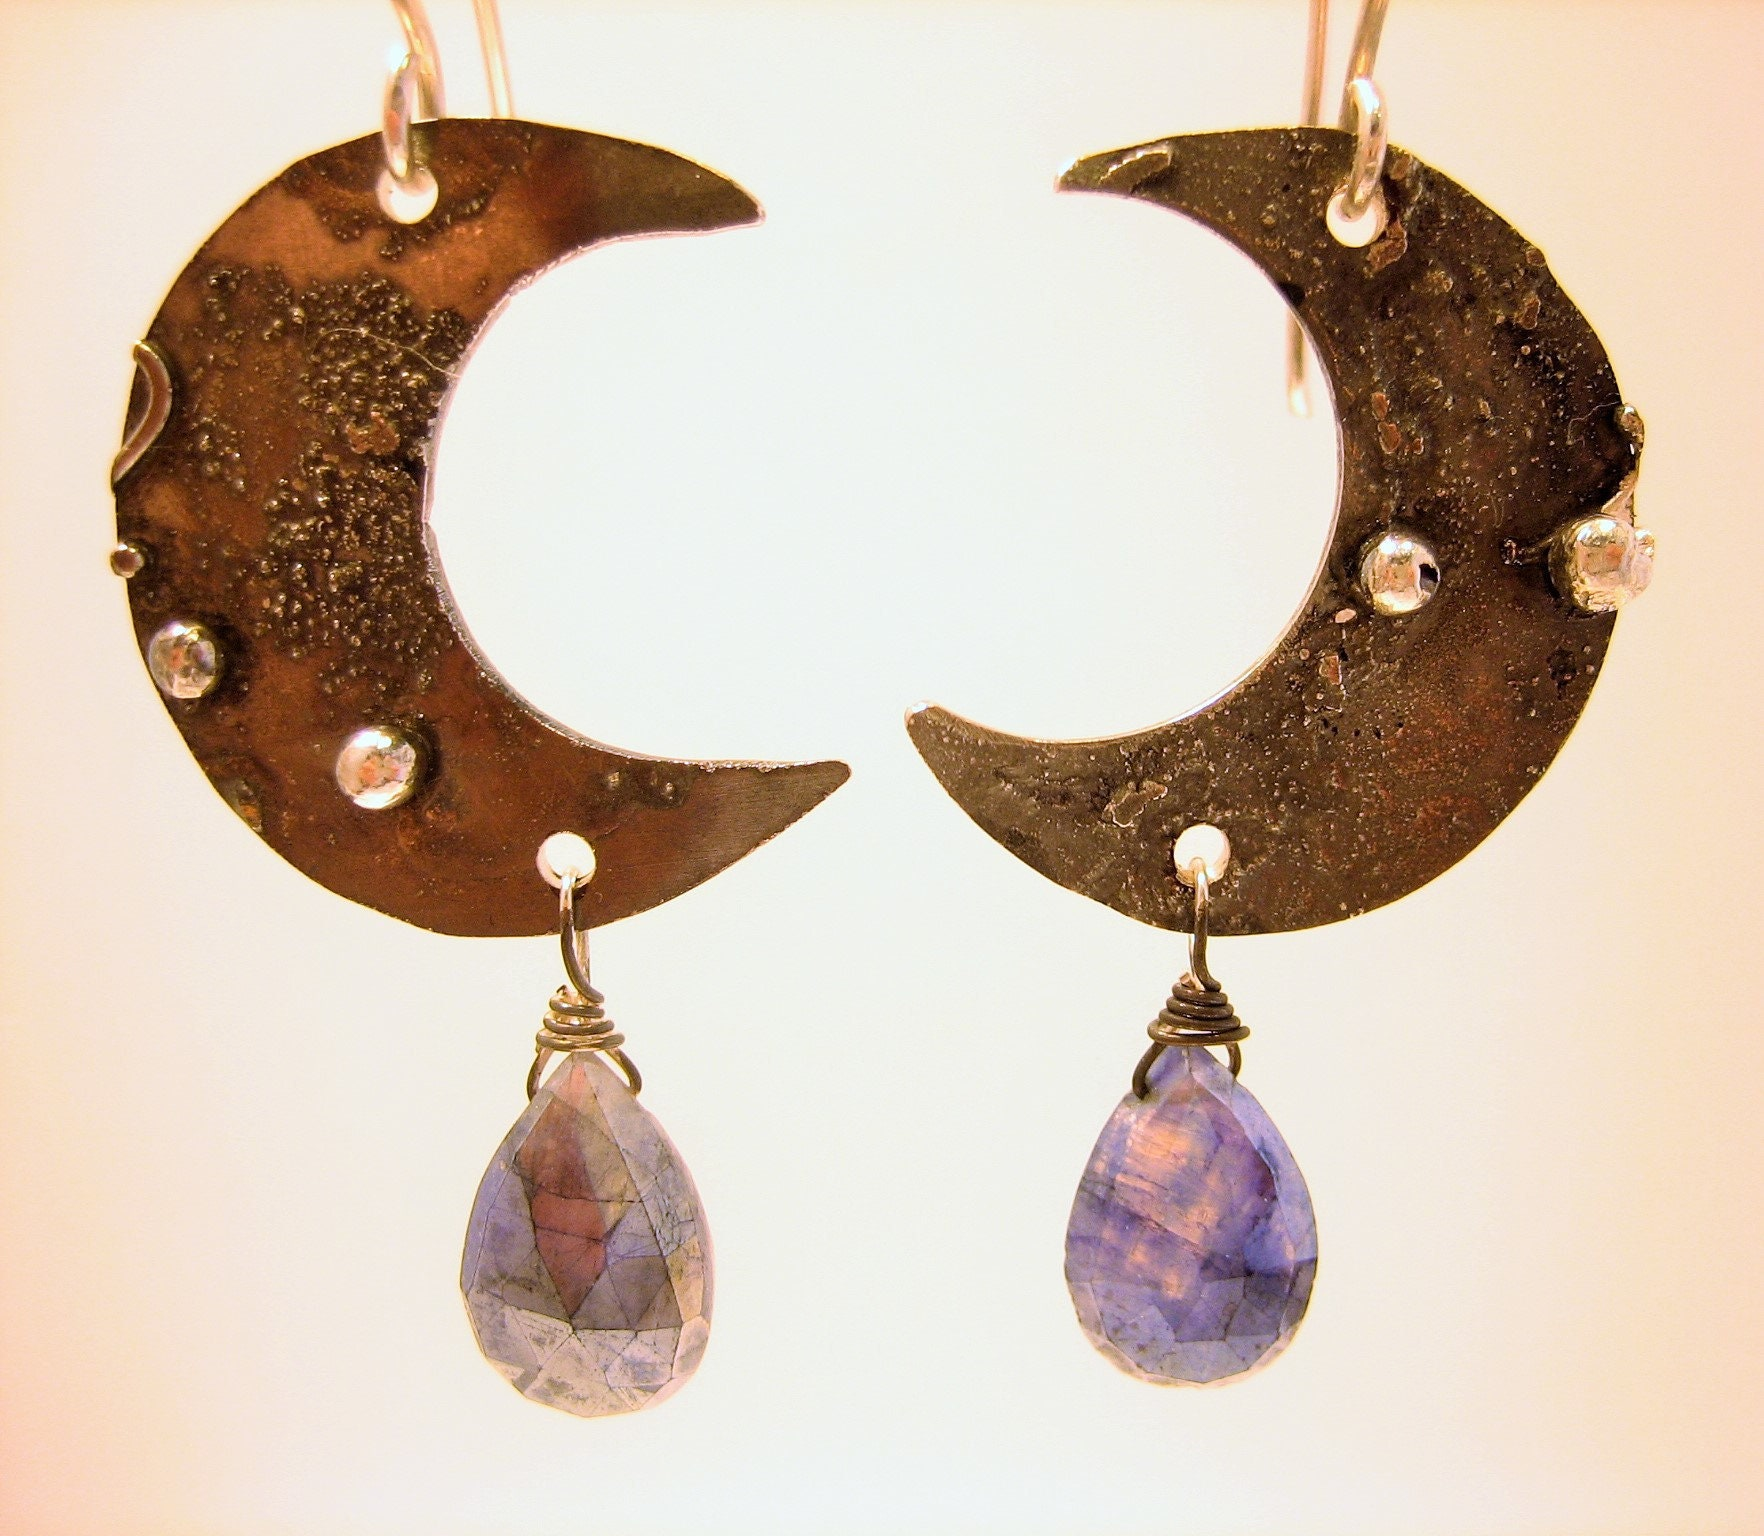 Oxidized silver and rainbow moonstone earrings, texturized earrings, ruztic gold druzy and silver earrings